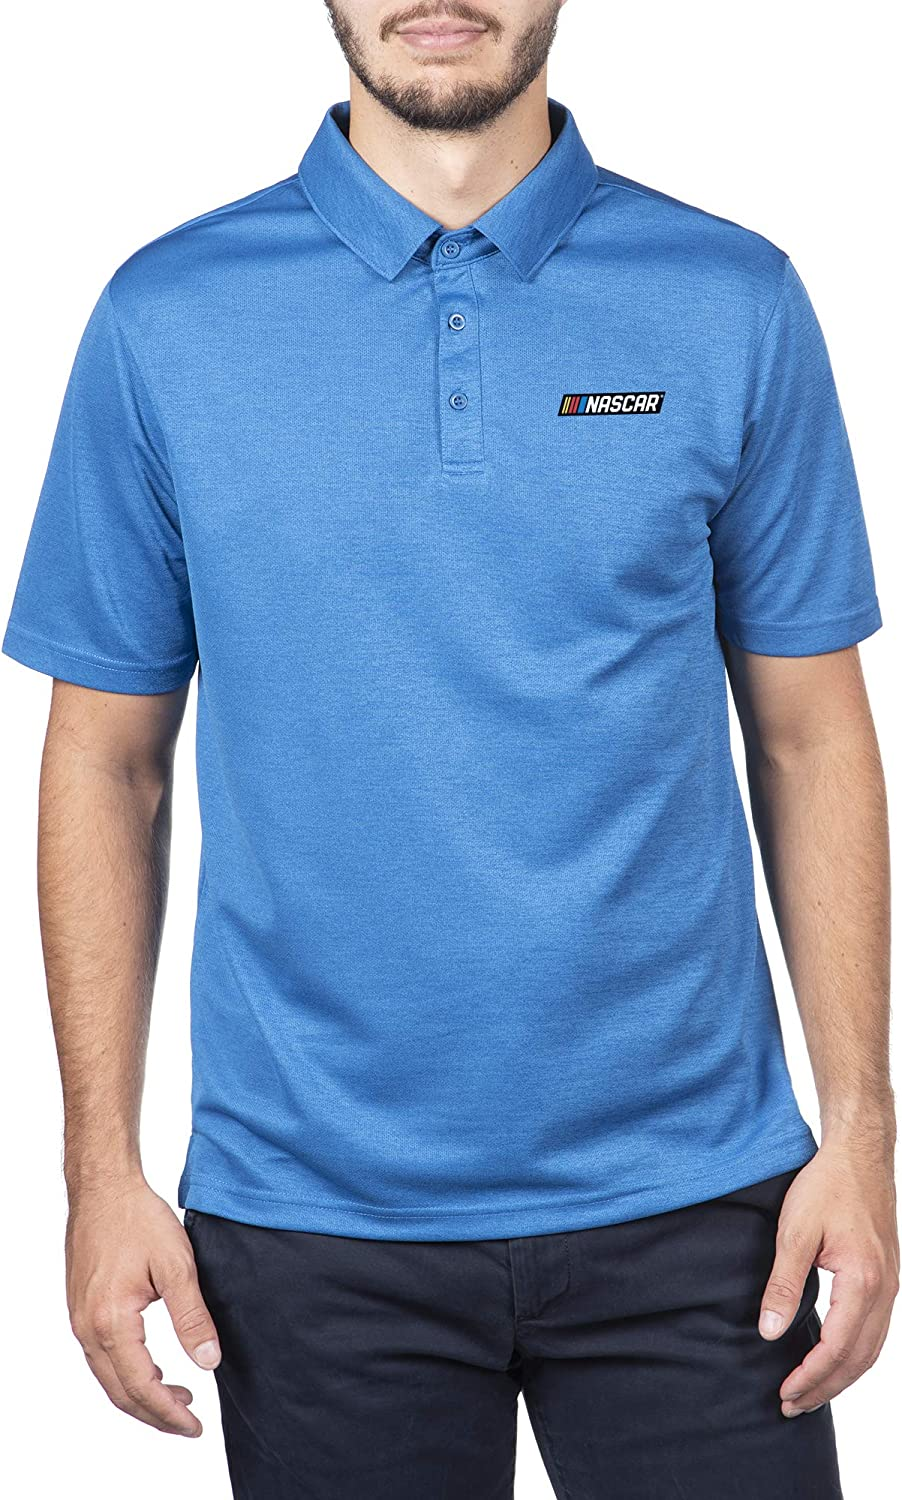 2021 spring and summer new Elite Fan Shop NASCAR Men's Core Royal X Icon Safety and trust Polo Favorite